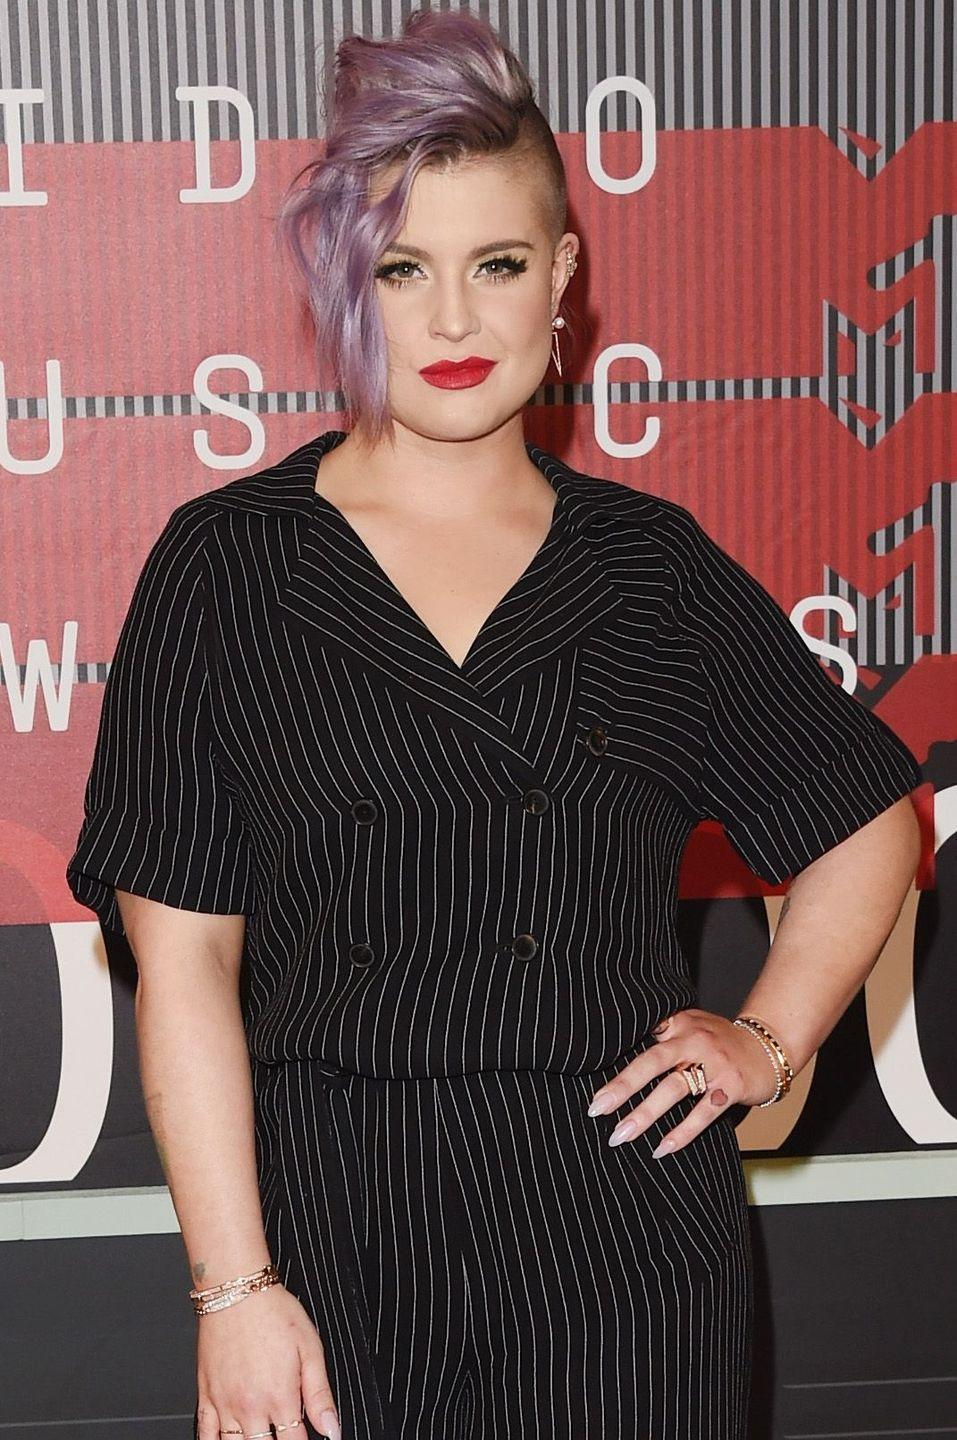 """<p>The British media mogul struggled with her alcohol and drug addictions the most when her parents, Sharon and Ozzy Osbourne, were experiencing life threatening illnesses in the early 2000s. Osbourne has now successfully been living in sobriety for over 7 years. </p><p><em>[h/t <a href=""""http://people.com/books/kelly-osbourne-once-committed-mental-institution-drug-abuse/"""" rel=""""nofollow noopener"""" target=""""_blank"""" data-ylk=""""slk:People"""" class=""""link rapid-noclick-resp"""">People</a></em></p>"""